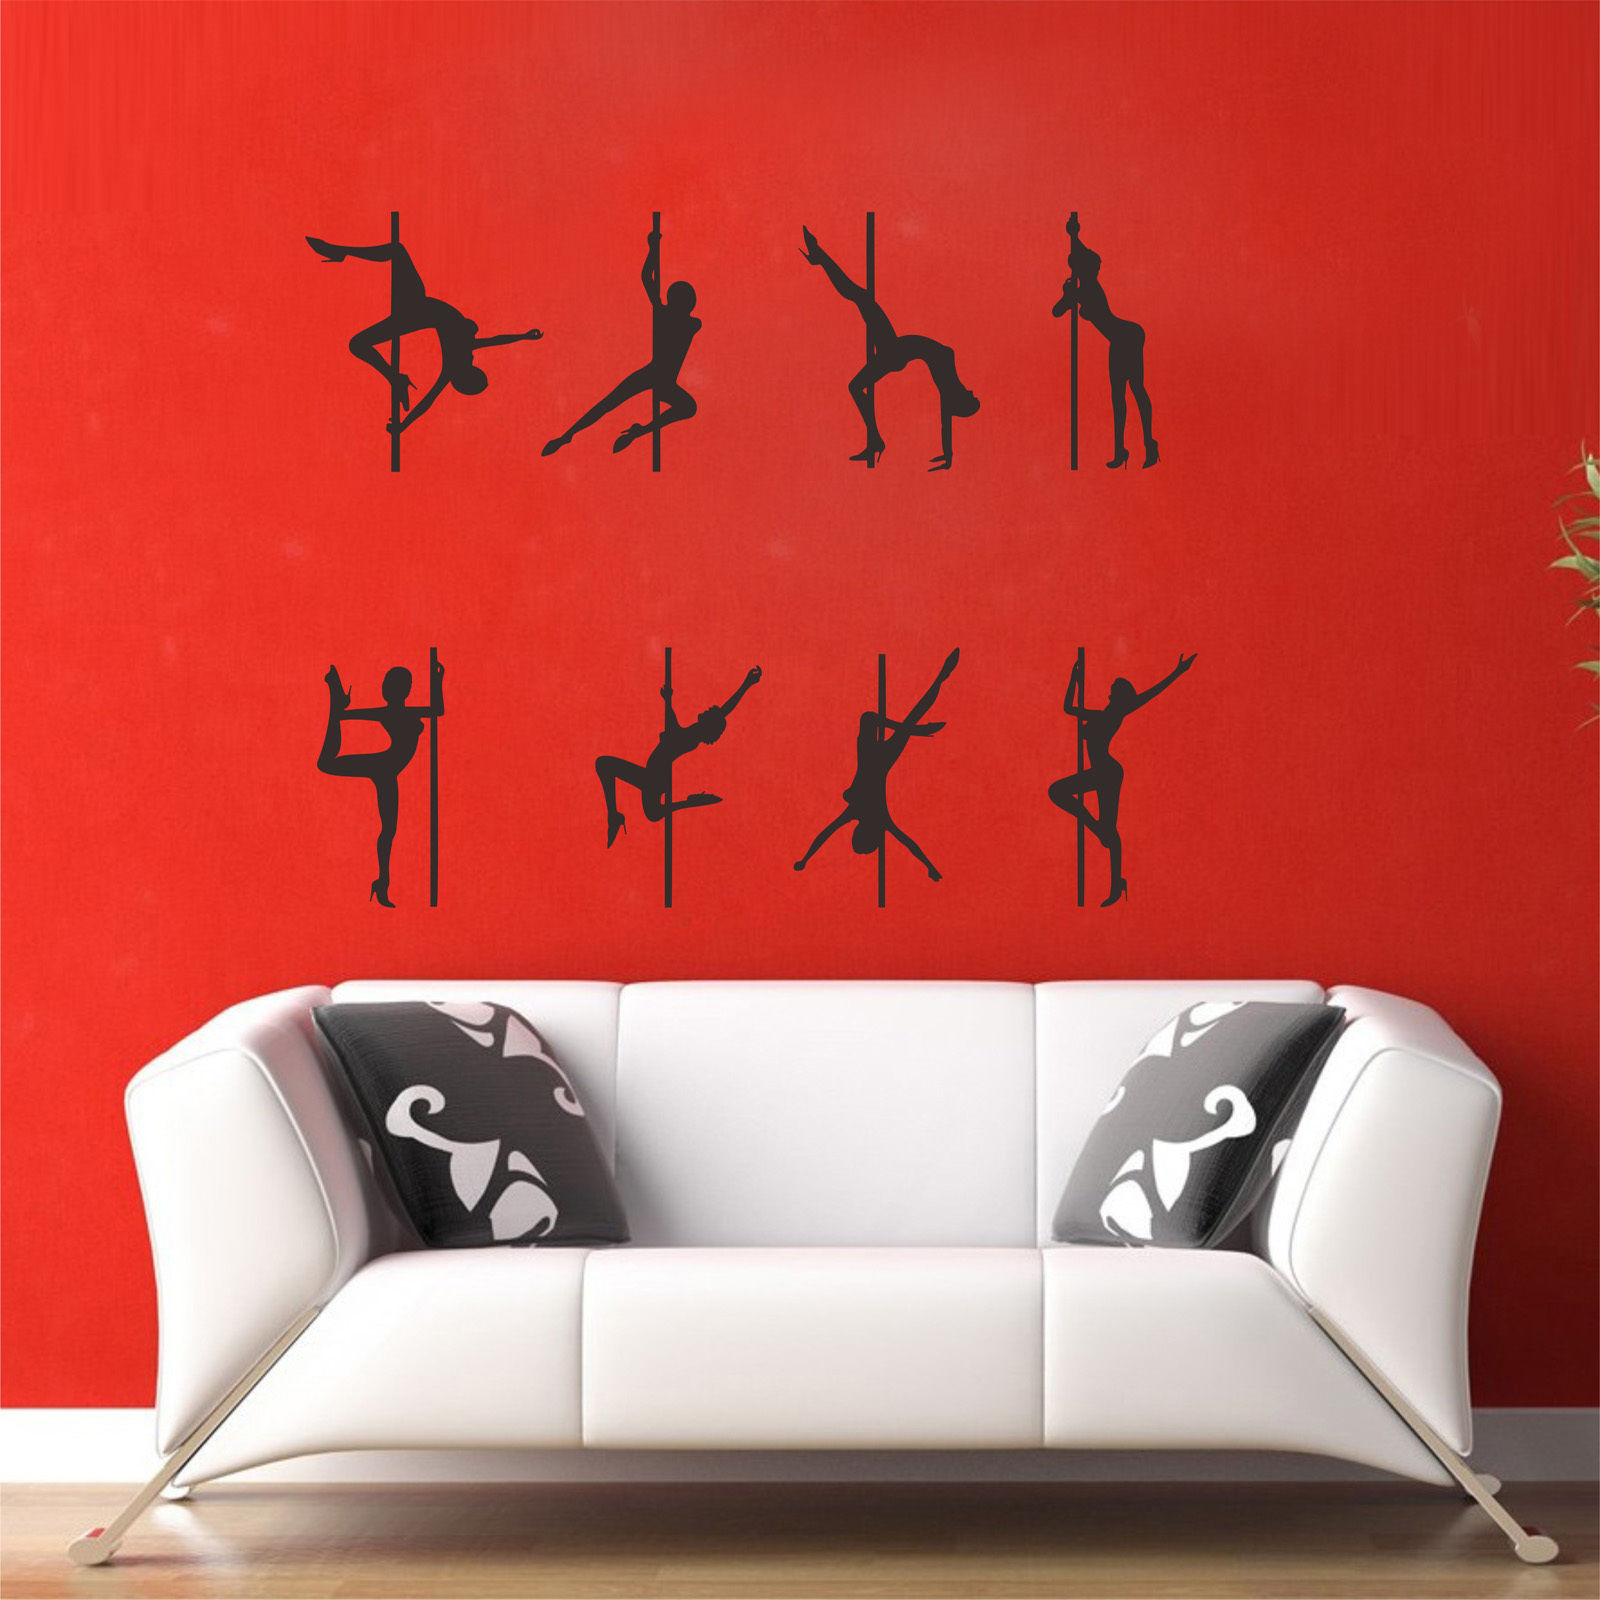 DIY Pole Dancing Vinyl Wall Decals Removable Stickers Free ShippingChina Mainland